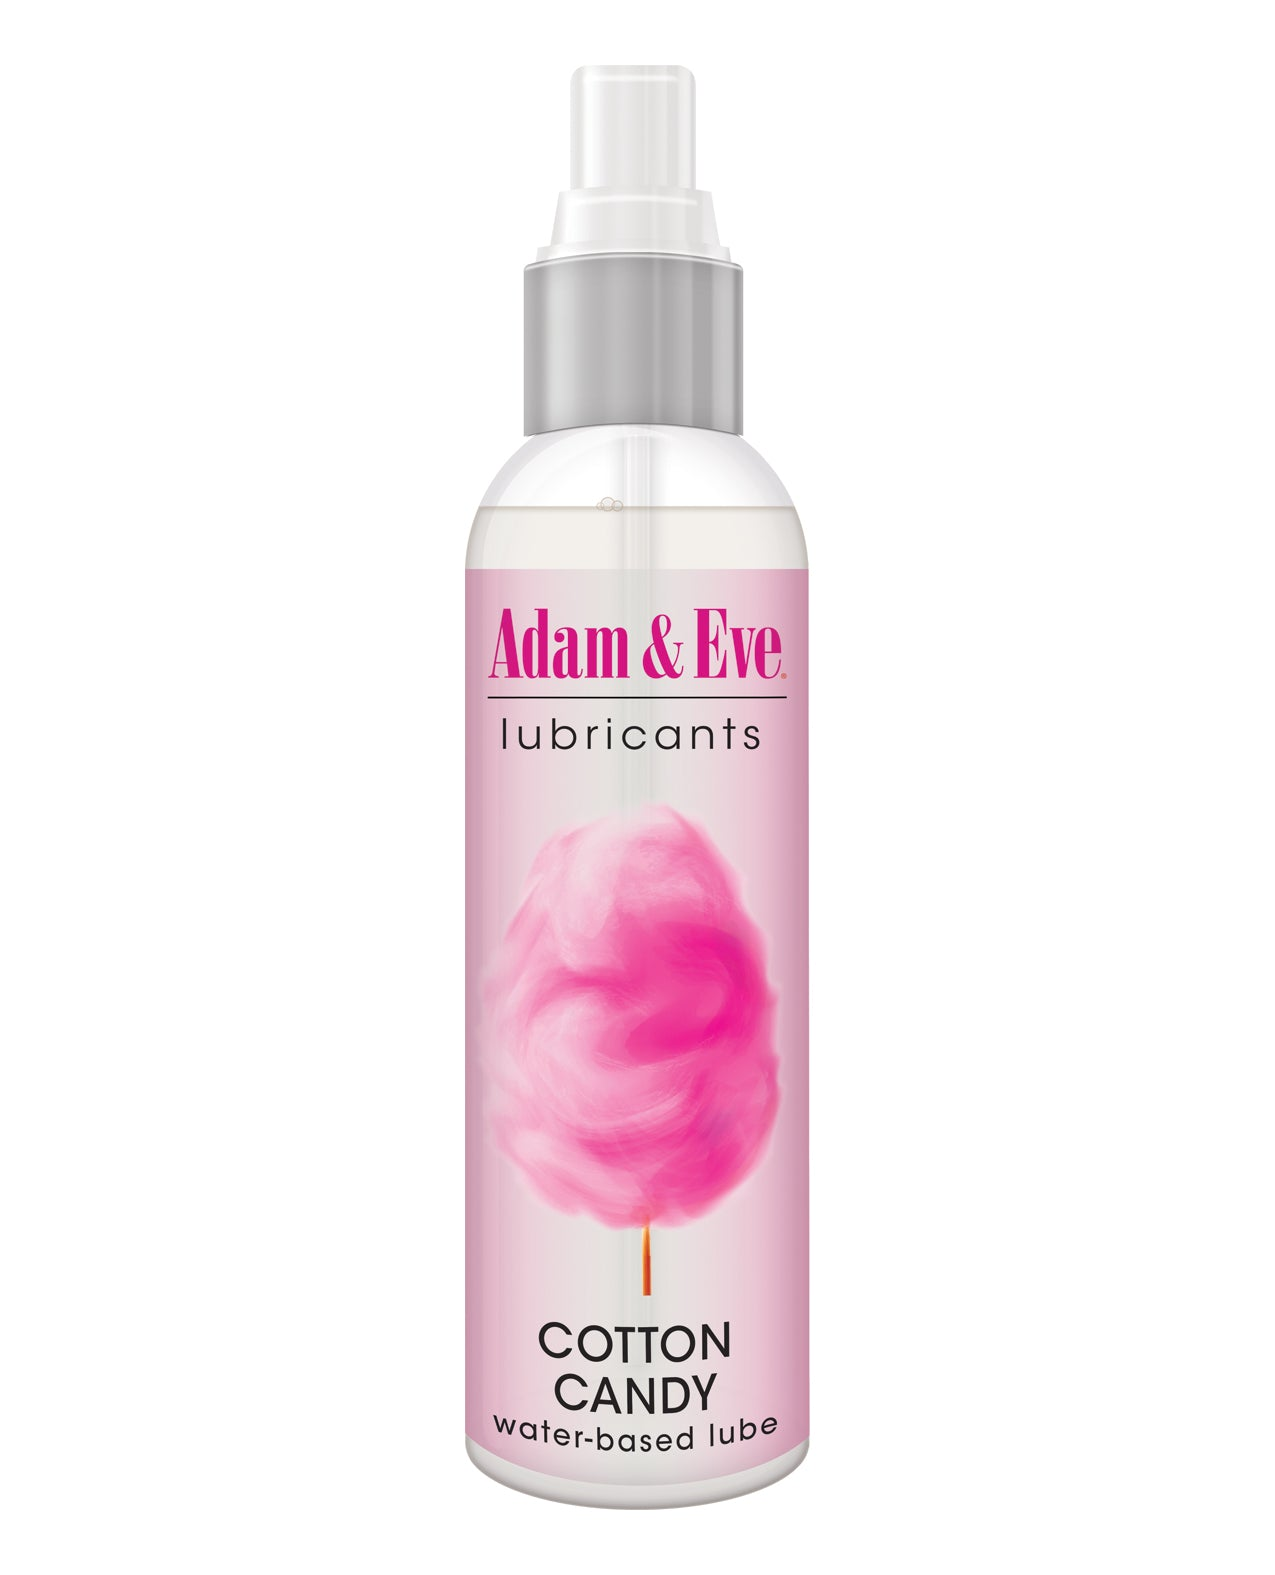 Adam & Eve Liquids Cotton Candy Water Based Lube